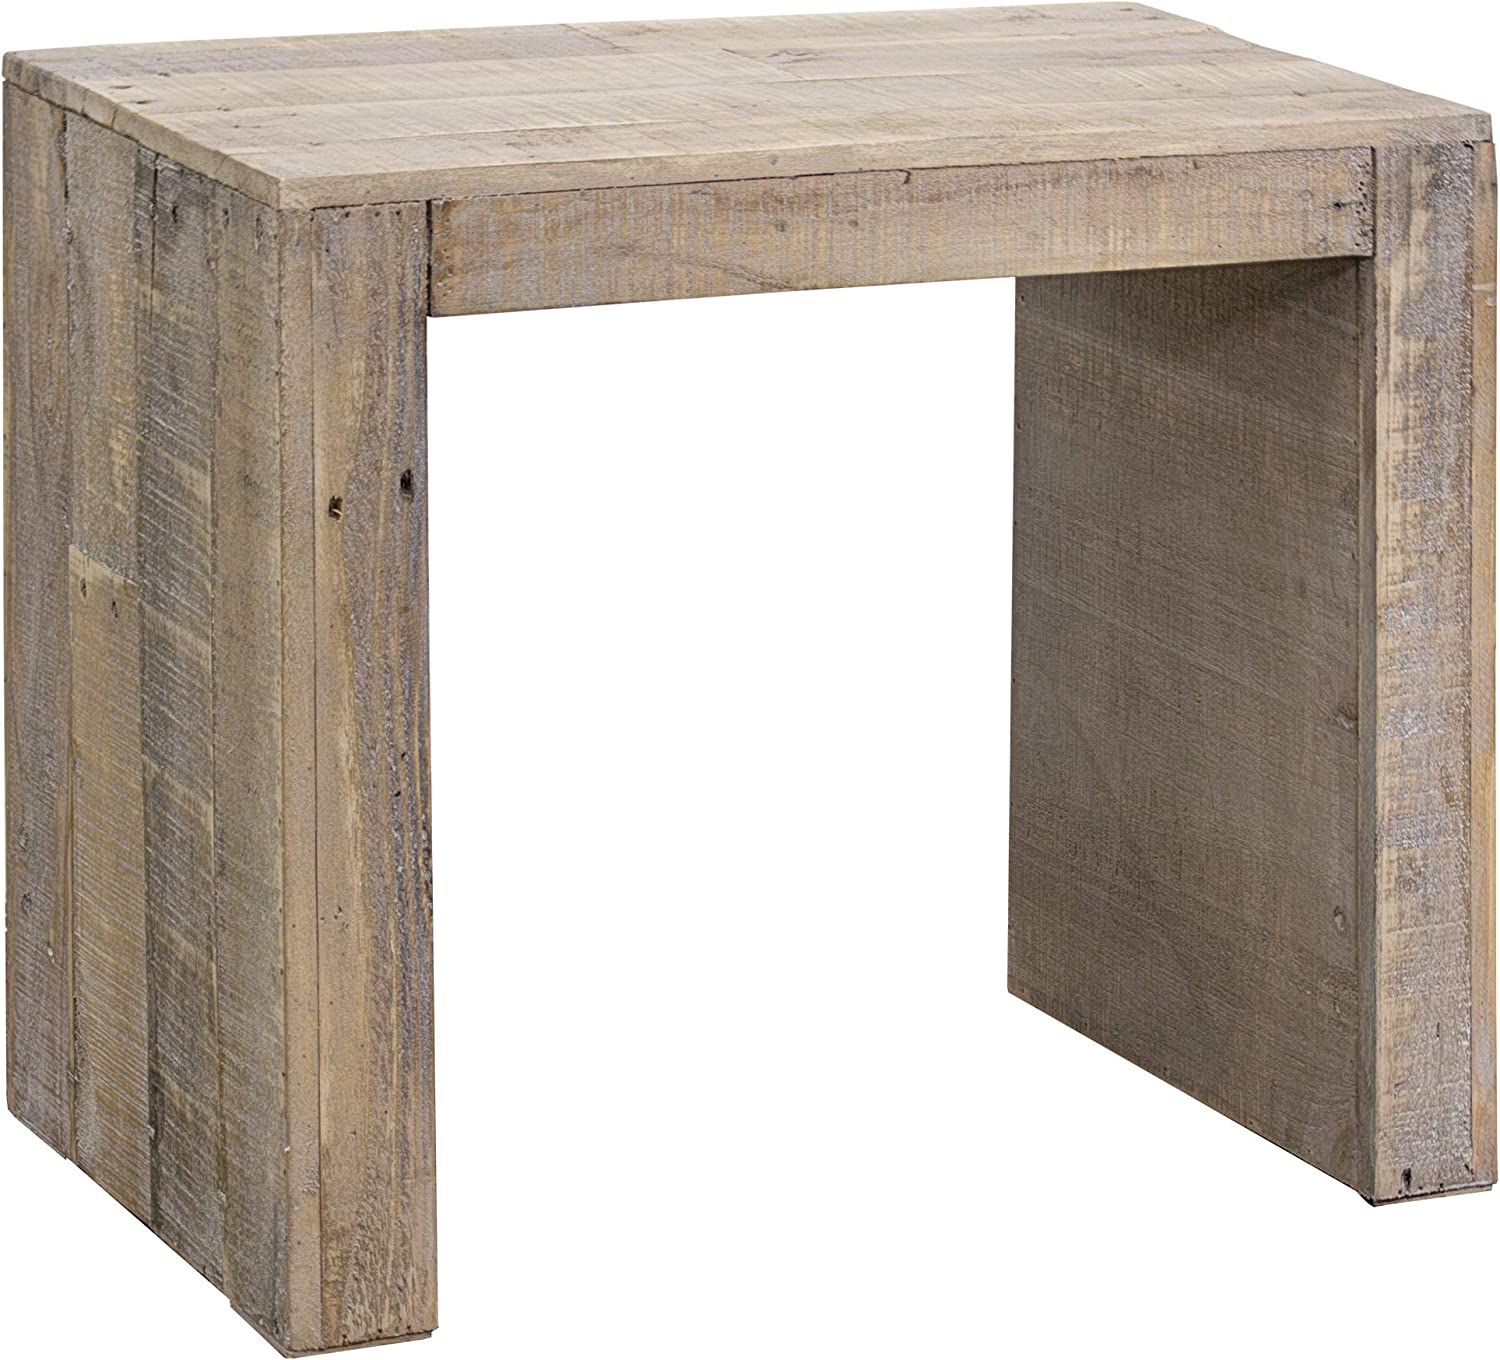 Amazon Com American Art Decor Small Reclaimed Wood Accent End Side Table For Living Room Bedroom Dining Room Brown 20 X 23 Kitchen Dining